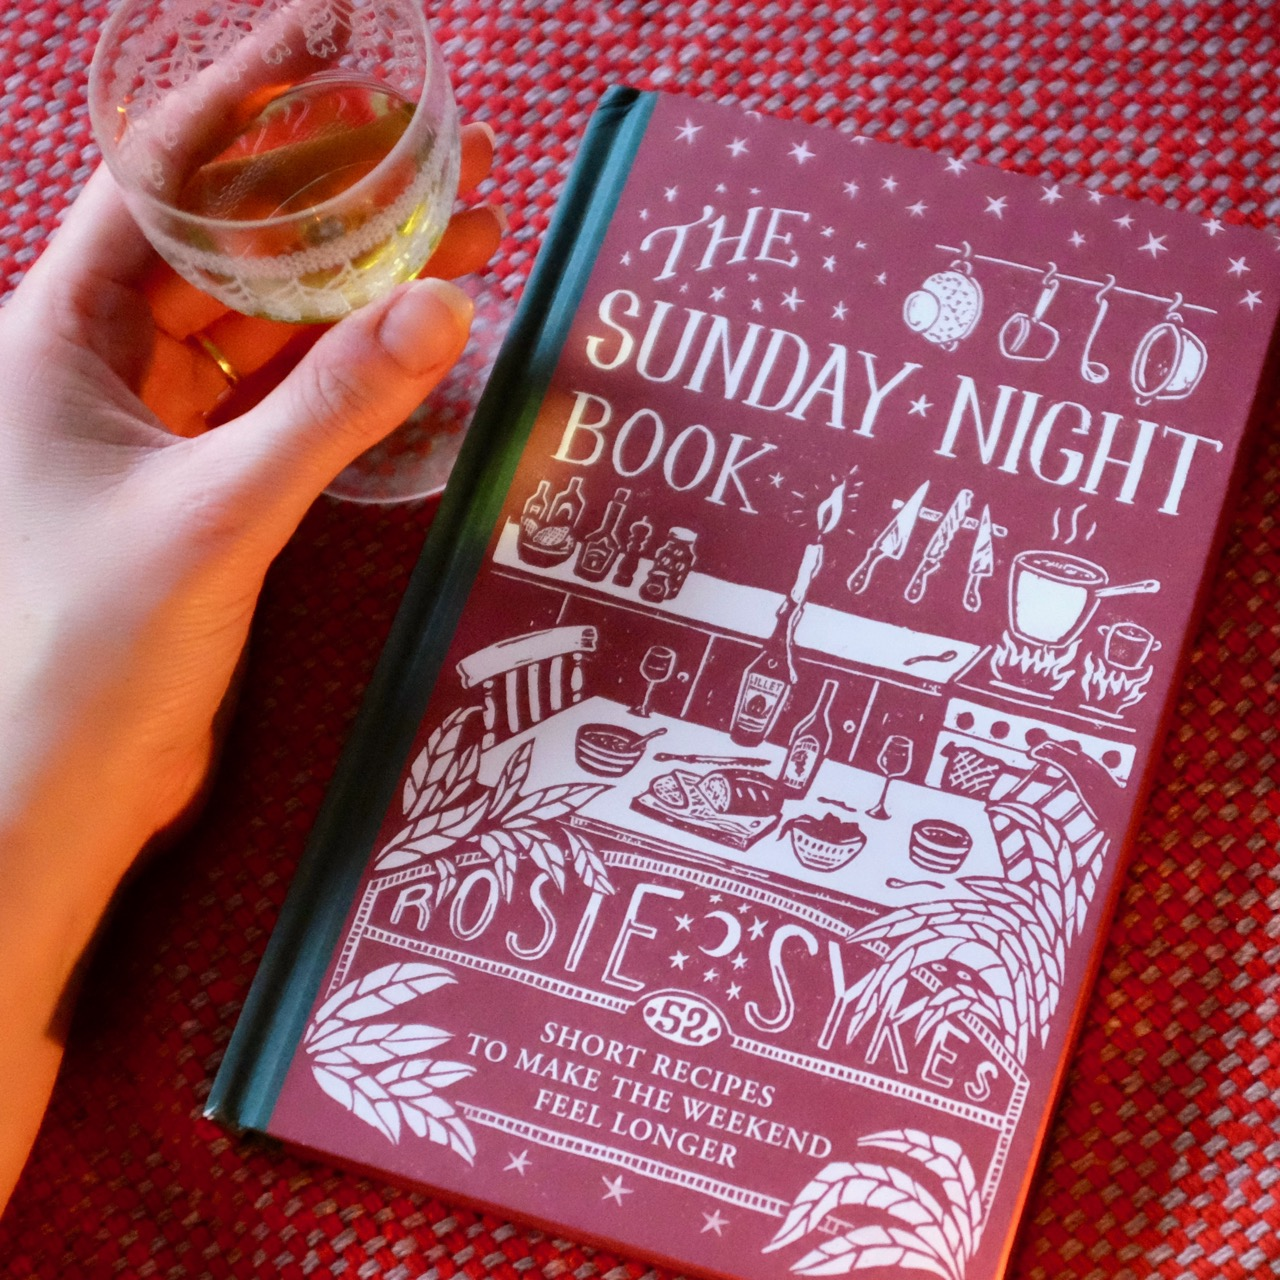 The Sunday Night Book by Rosie Sykes